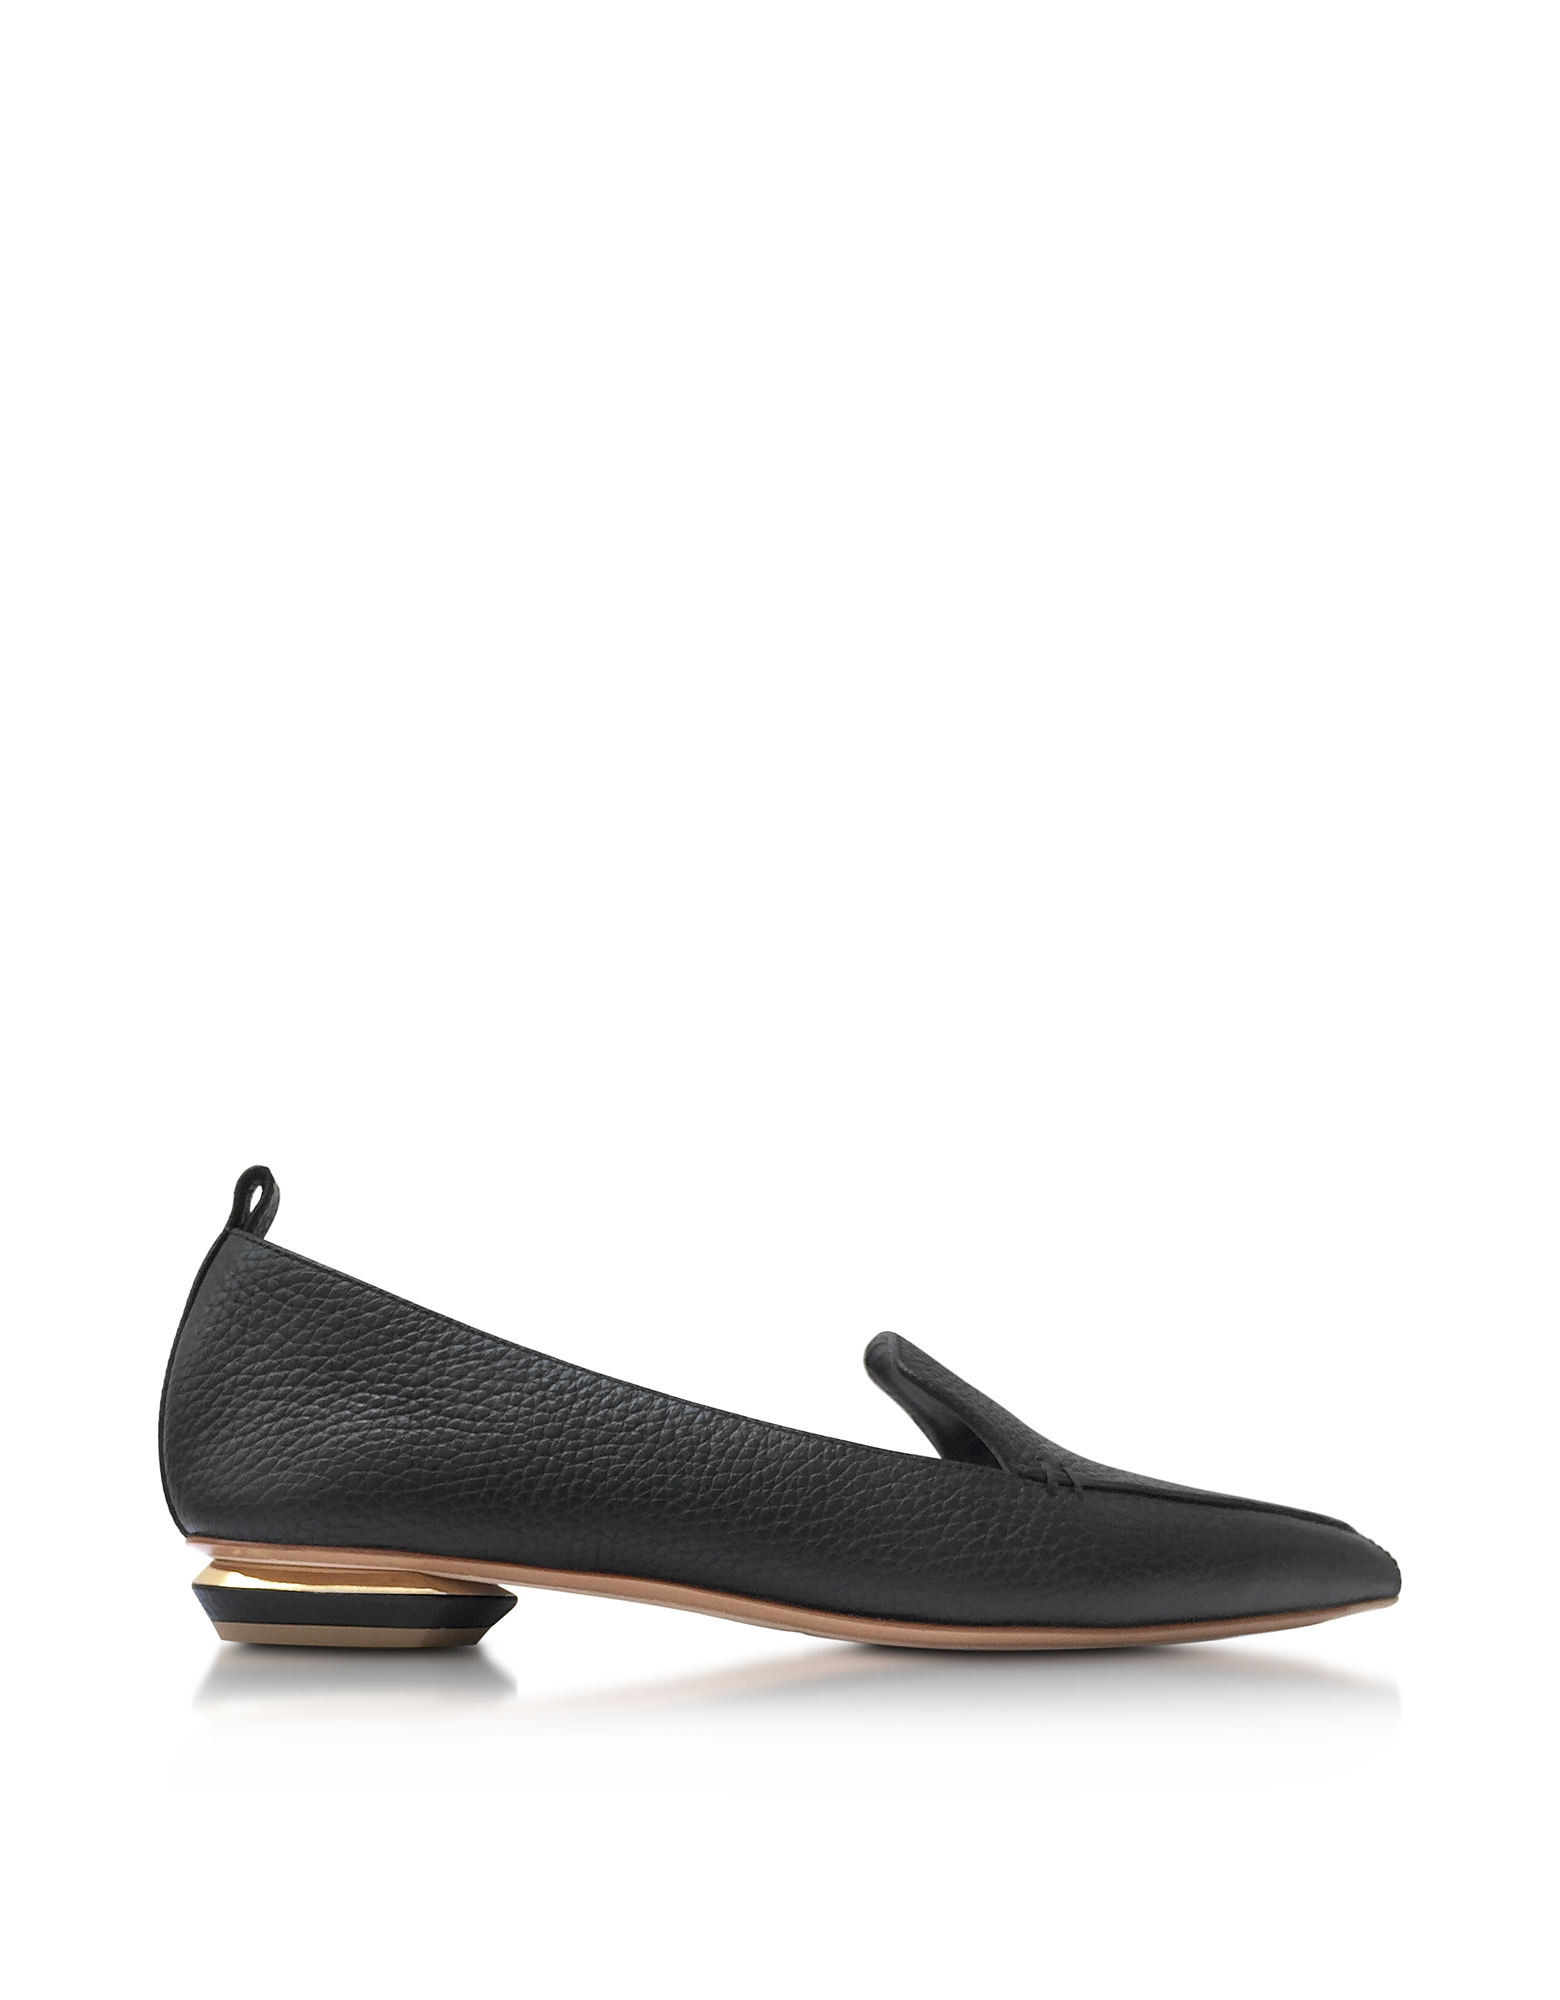 Nicholas Kirkwood Shoes, Beya Black Tumbled Leather Loafer